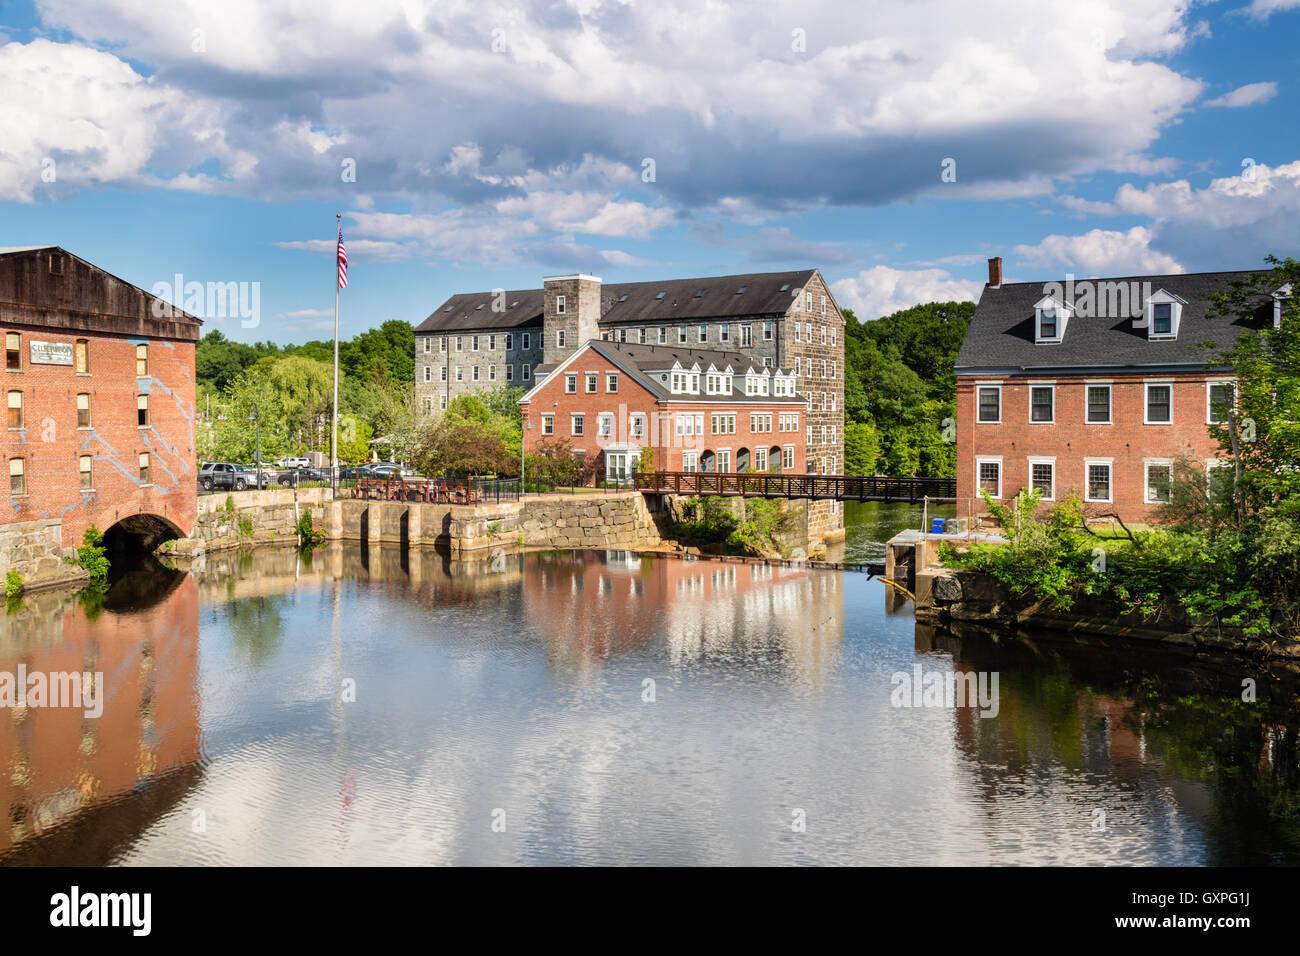 Old Textile Mills along the Lamprey River in New Market, New Hampshire - Stock Image